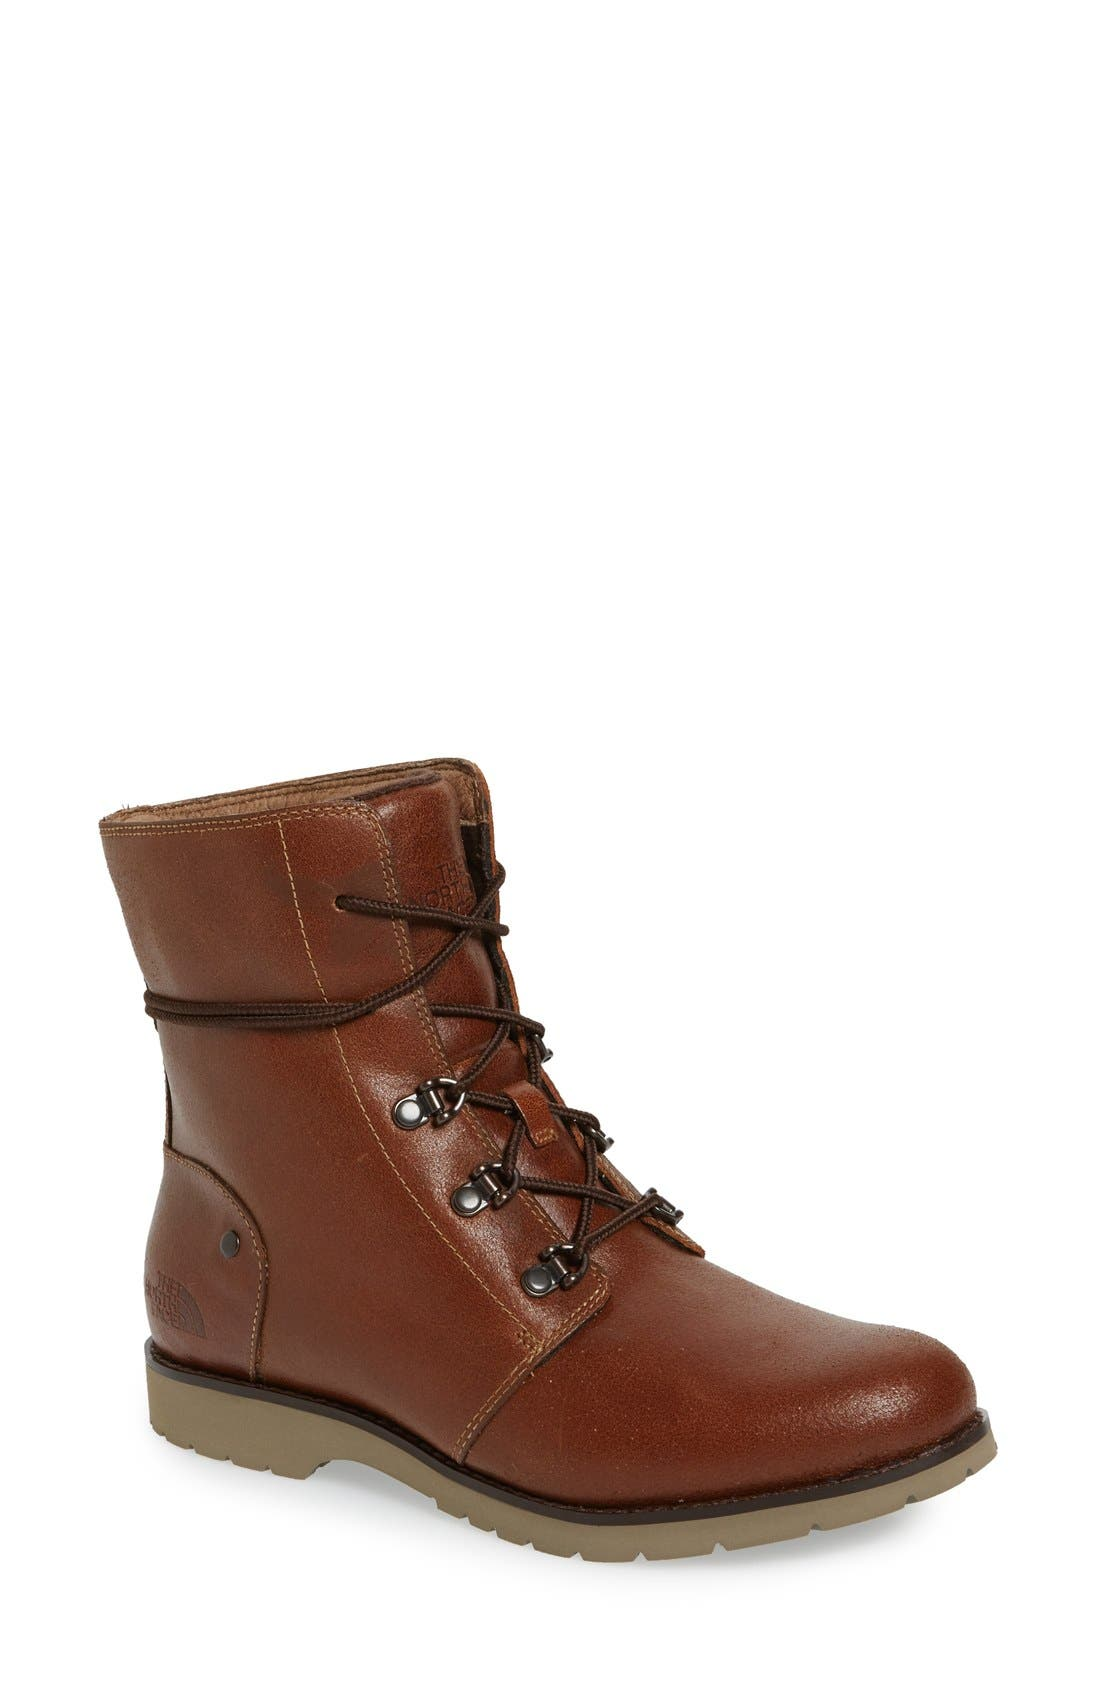 'Ballard' Boot,                         Main,                         color, Dachshund Brown